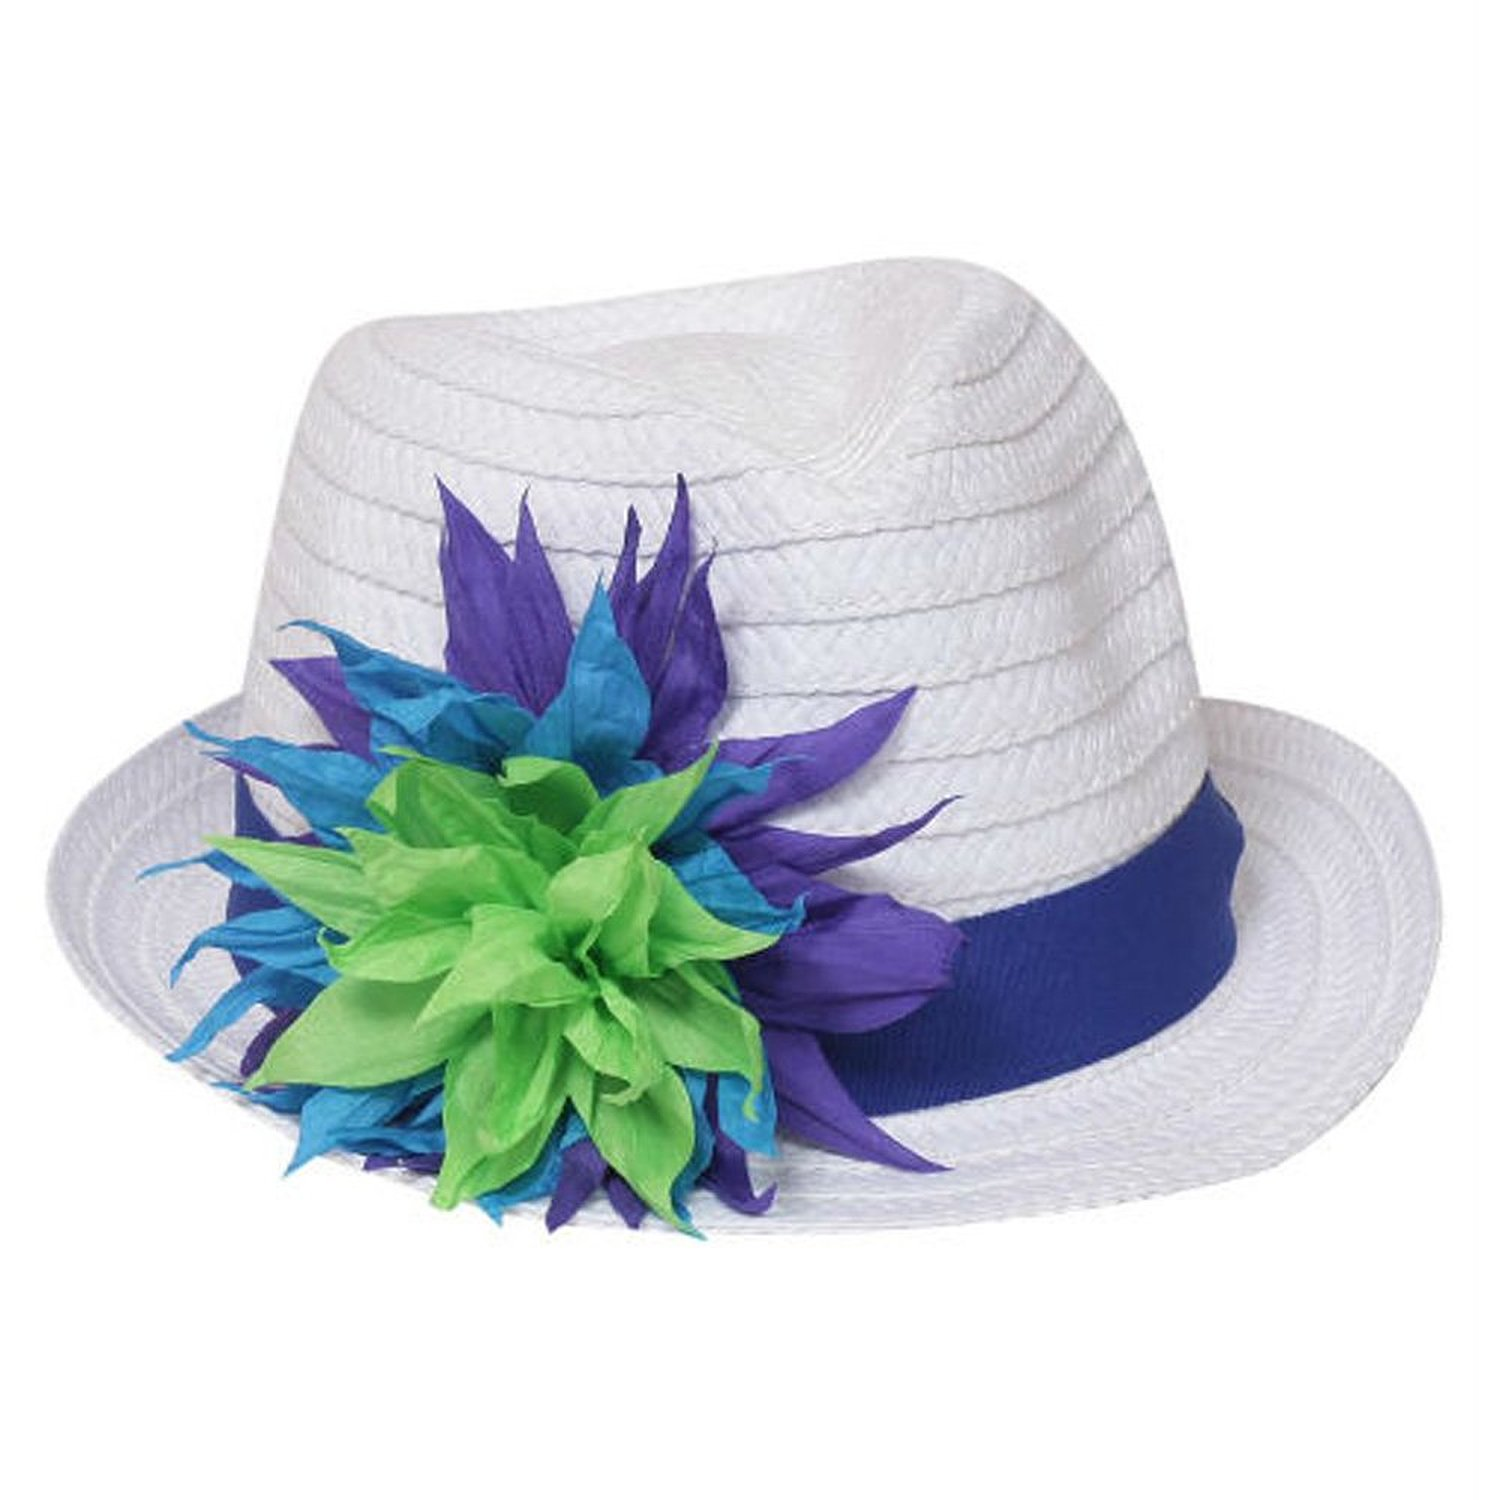 Port Classic Paper Straw Summer Sun Flower Fedora